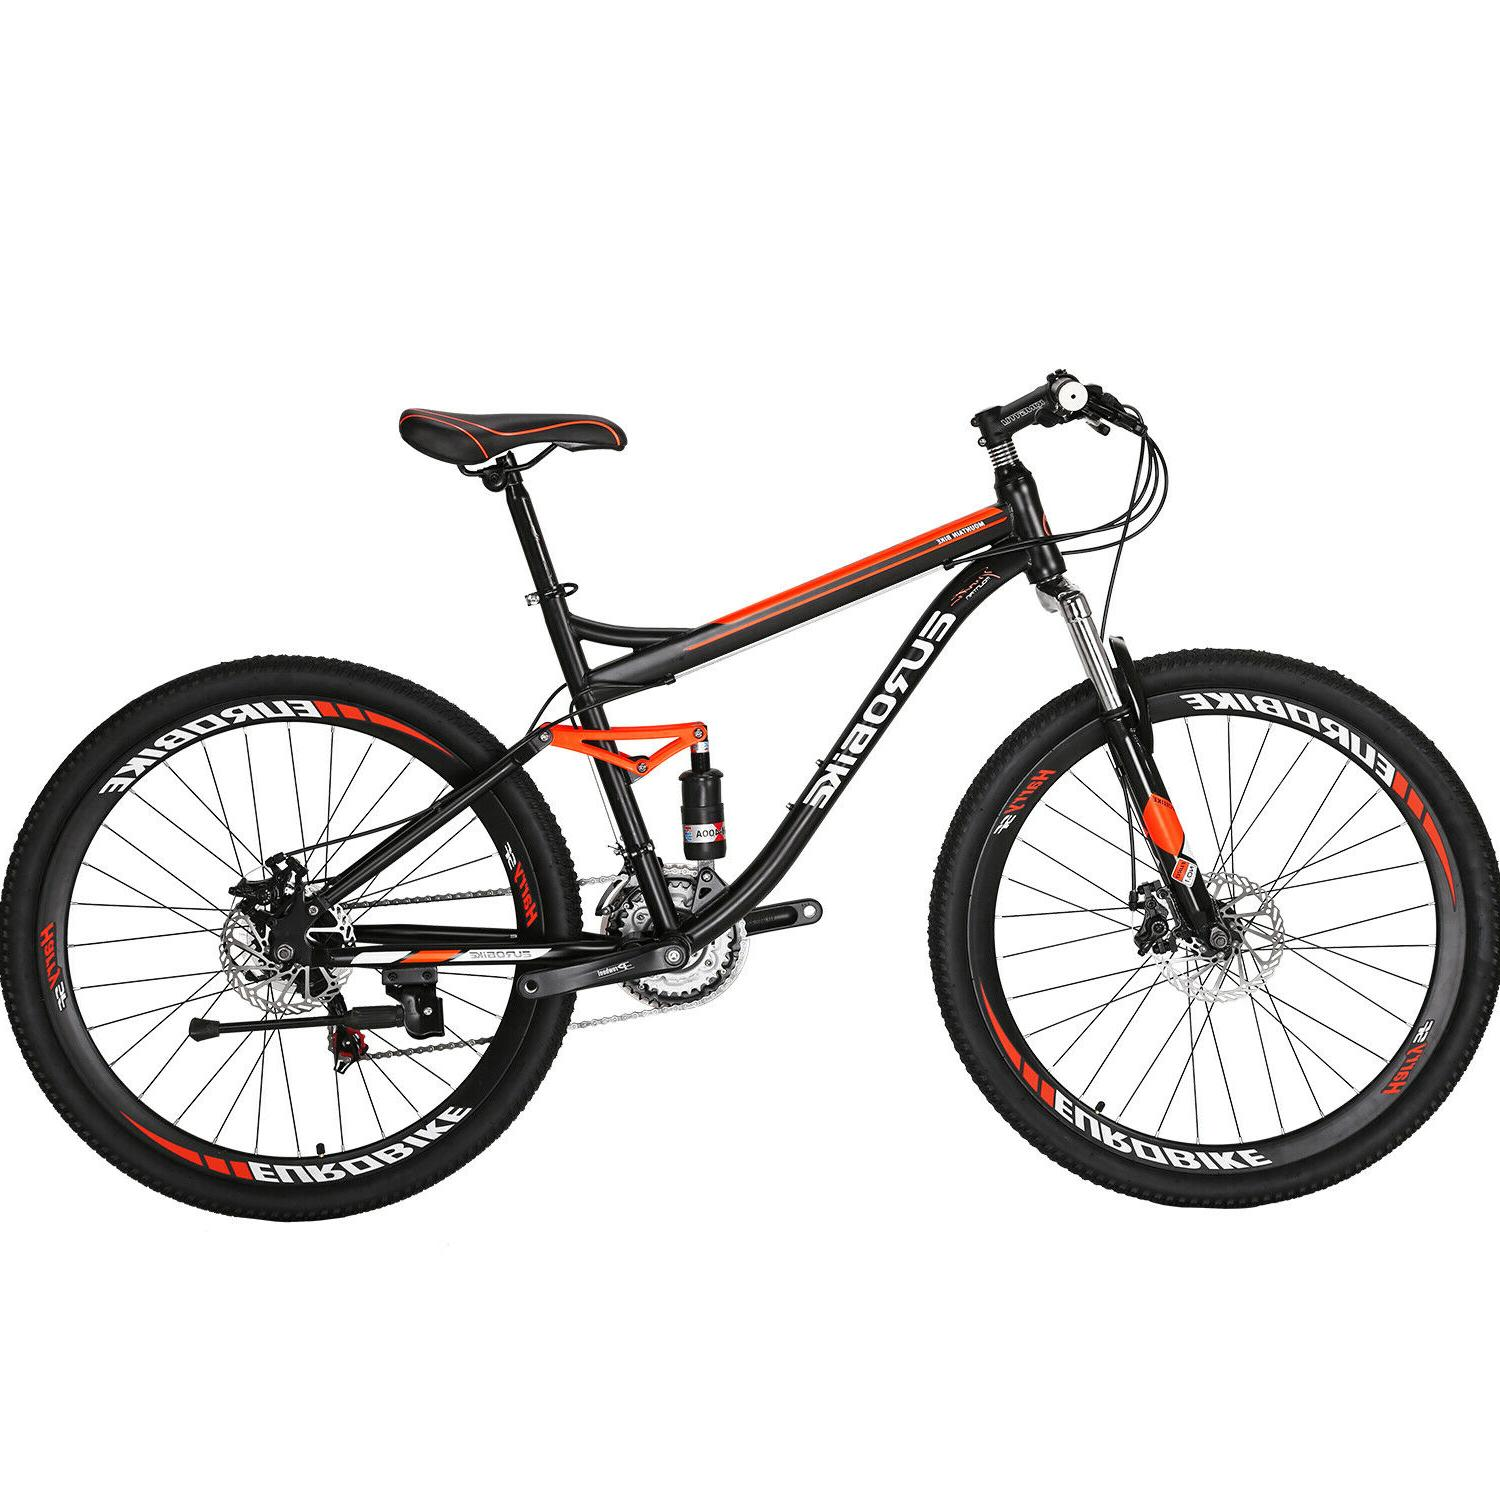 "27.5"" Bike 21 Speed Mens Bikes"